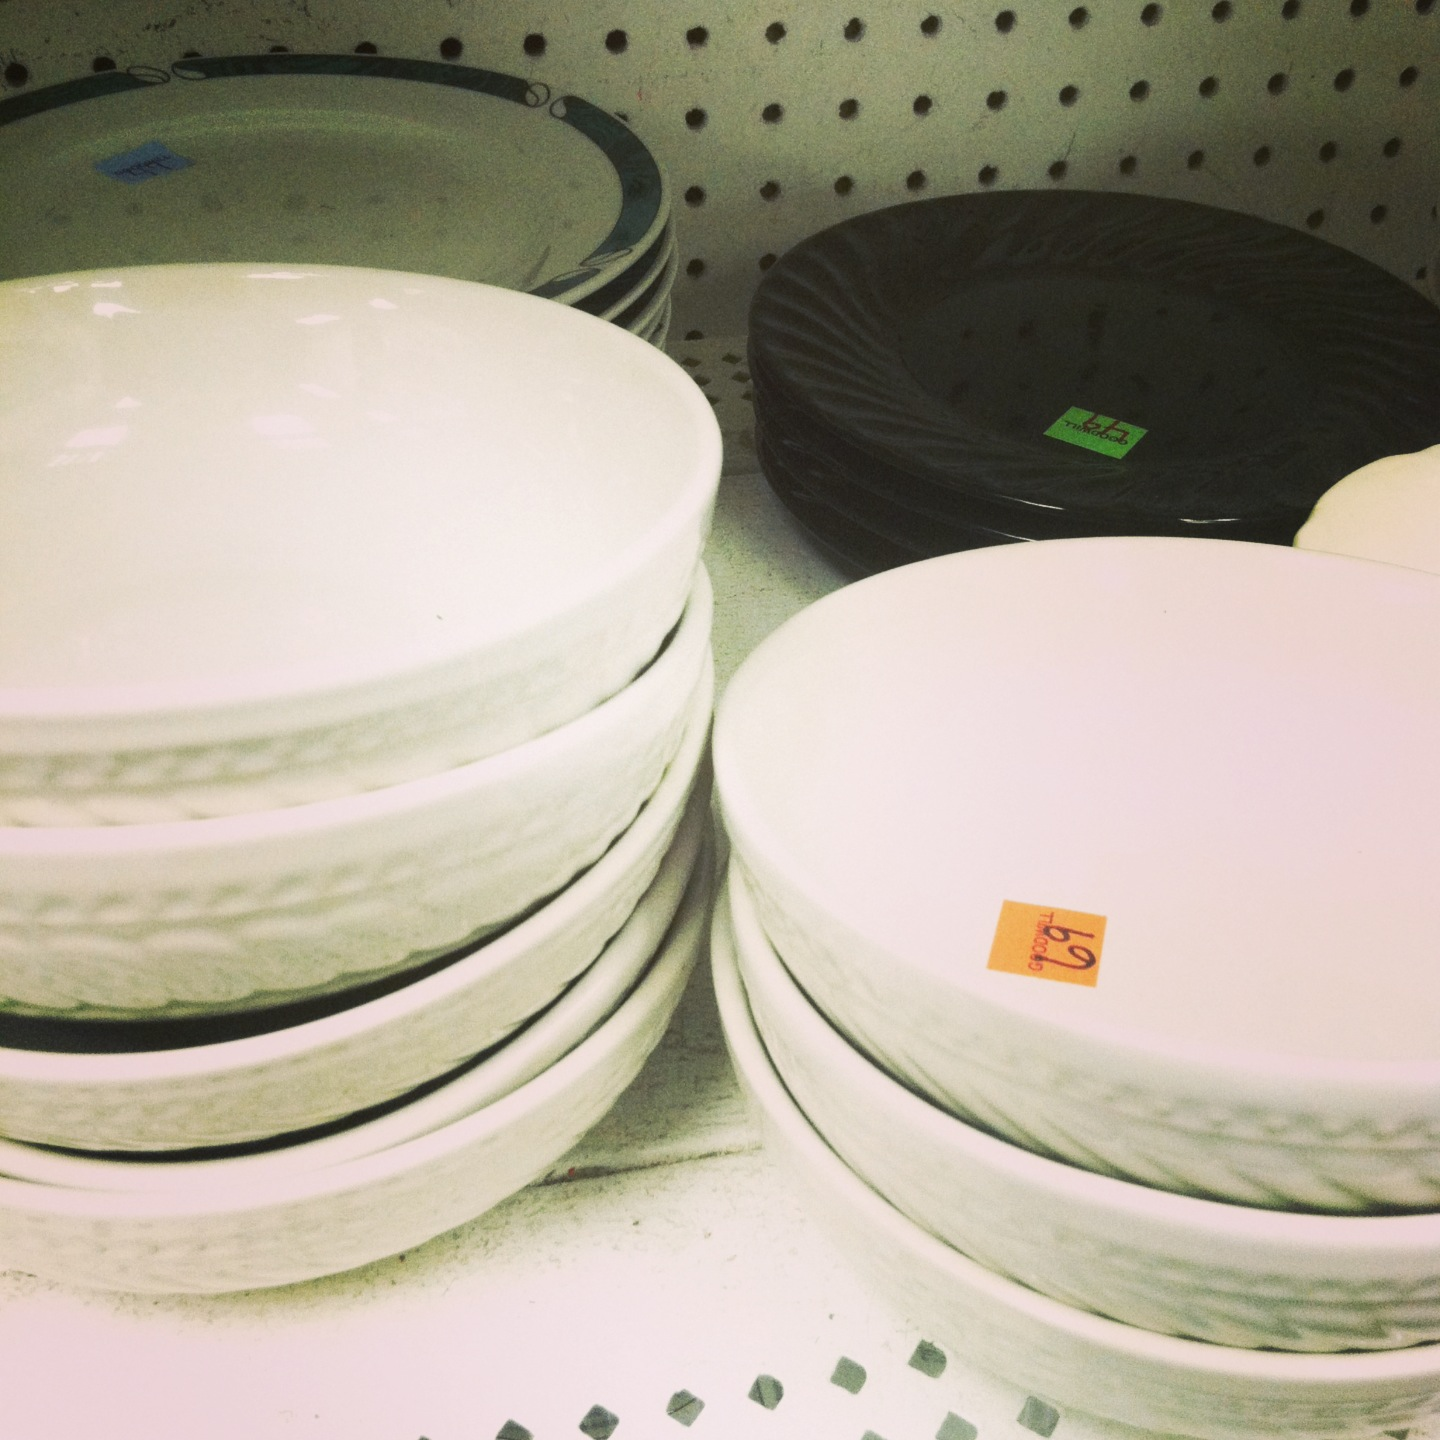 Look for shallow bowls in thrift stores to convert into #DIY nesting bowls via @NestofPosies